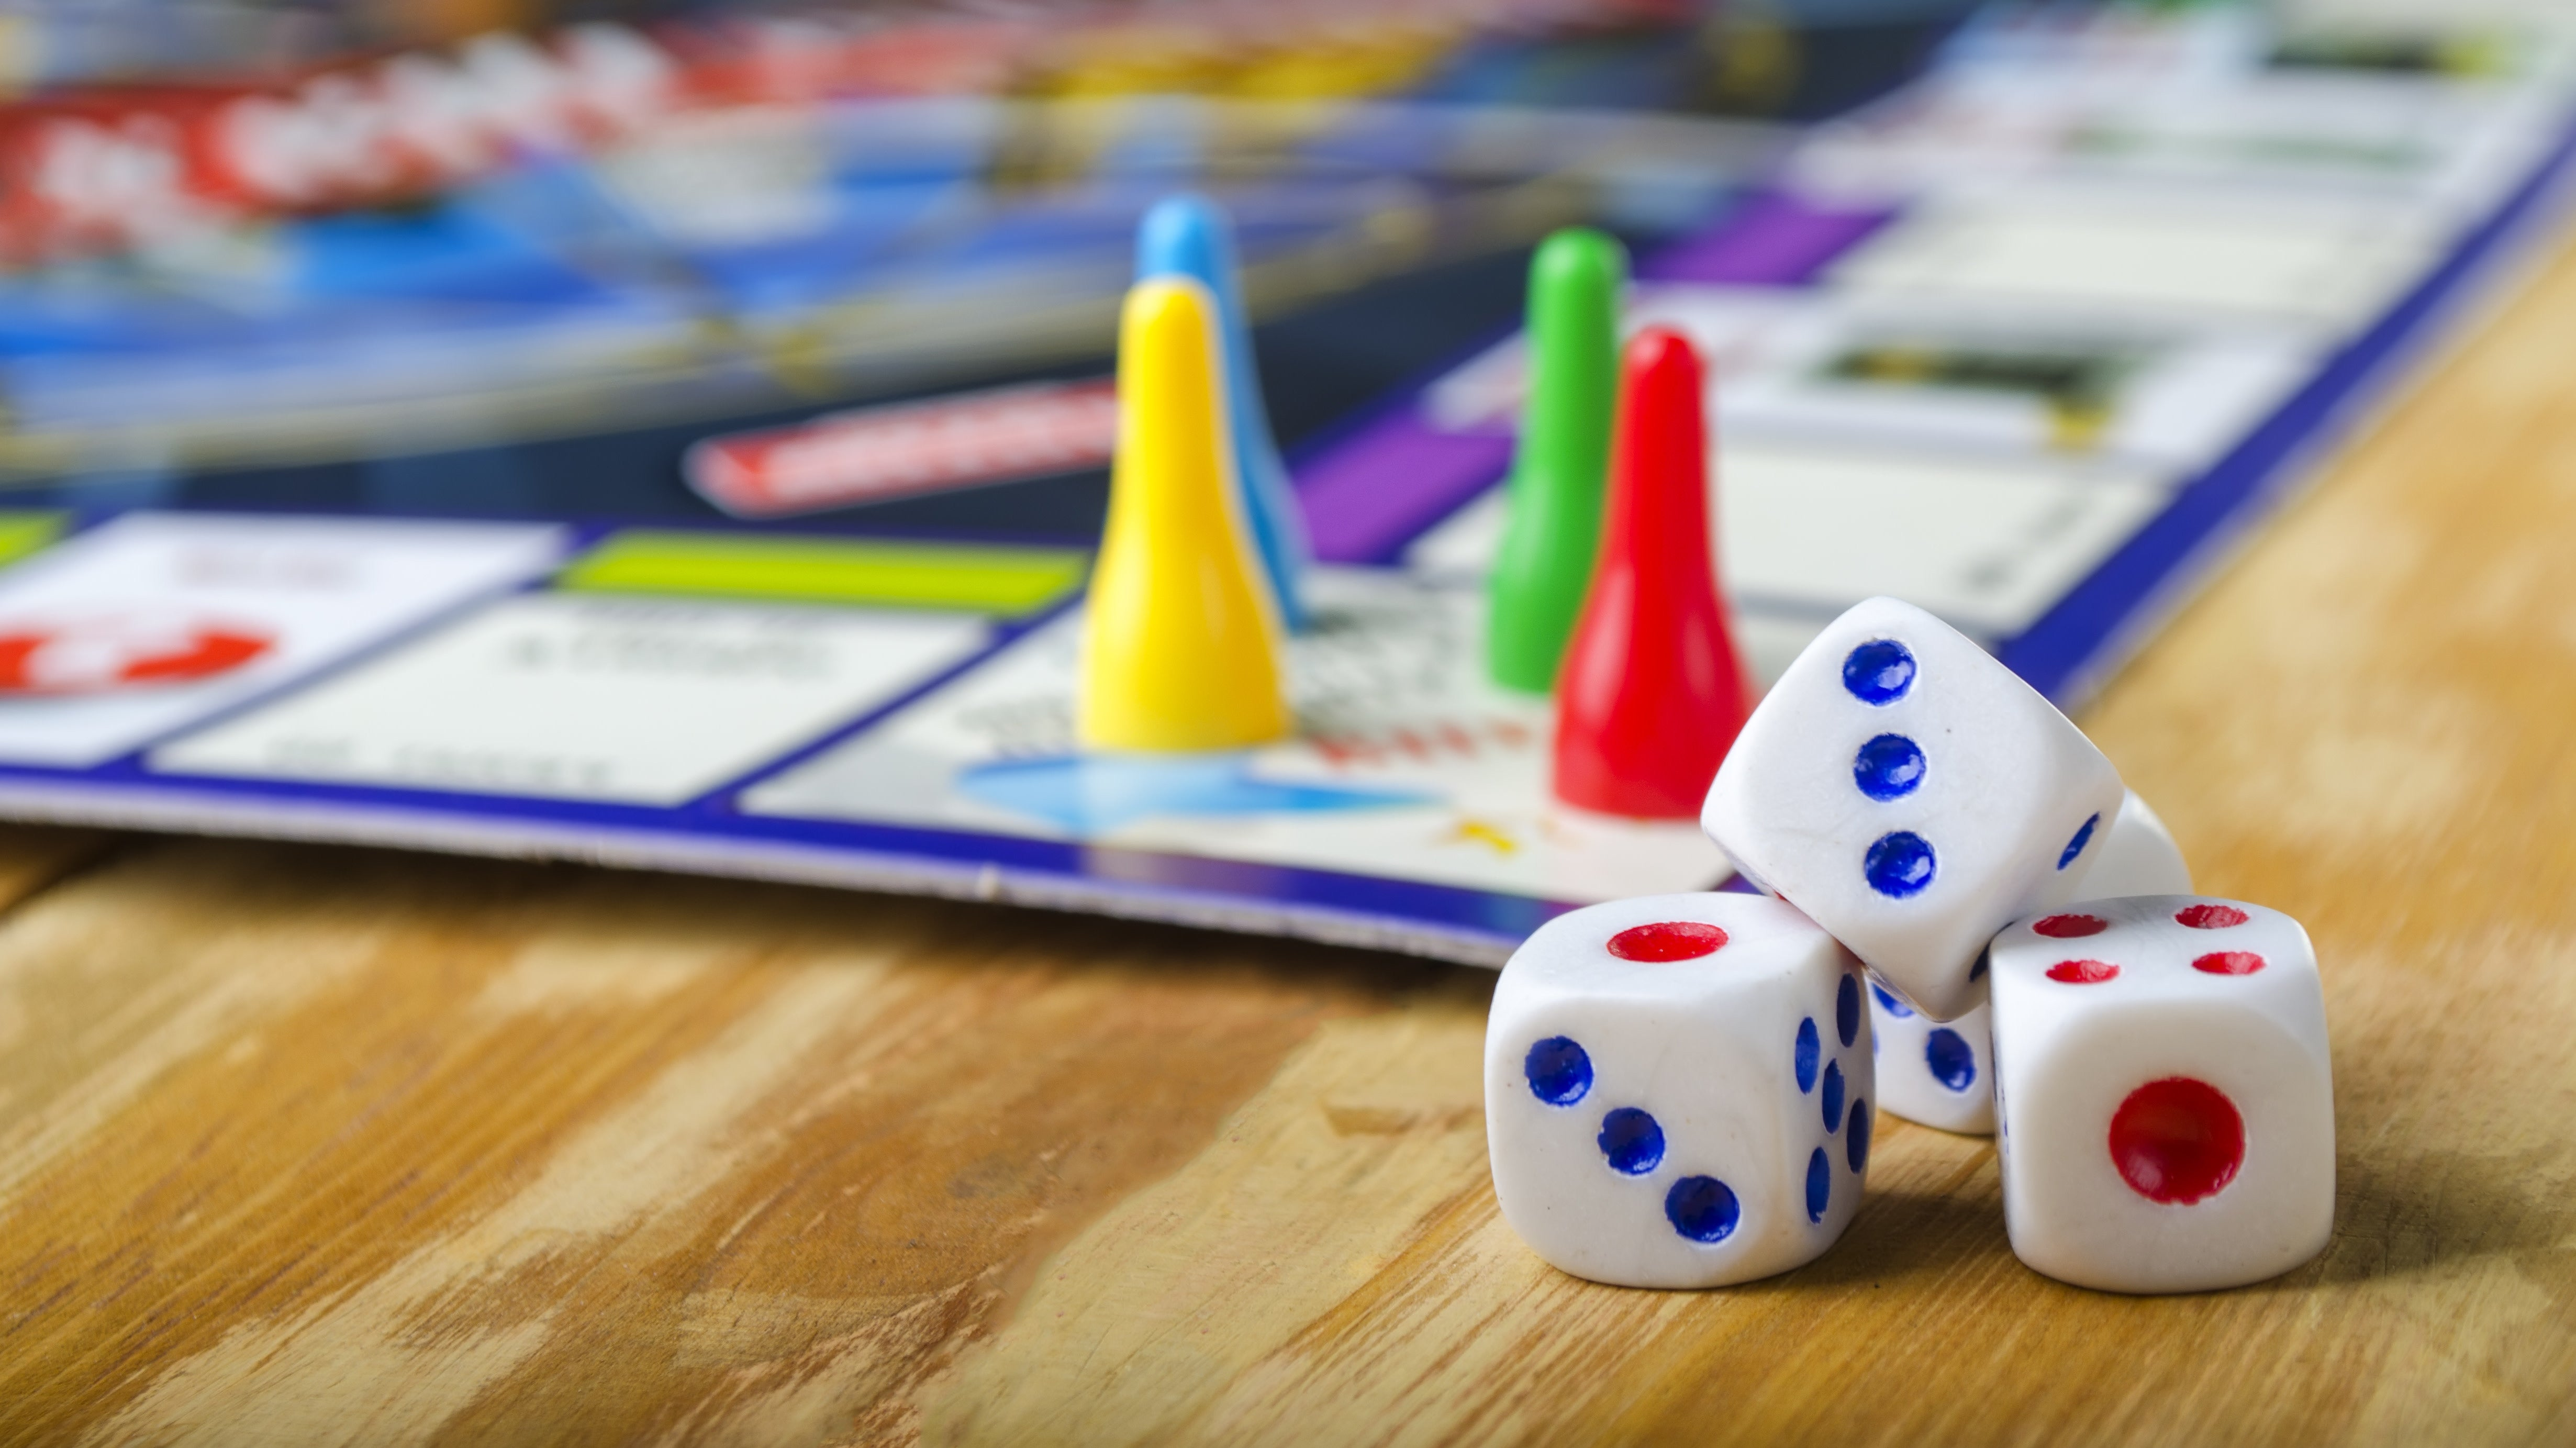 Remix Your Board Games With This Free Kit